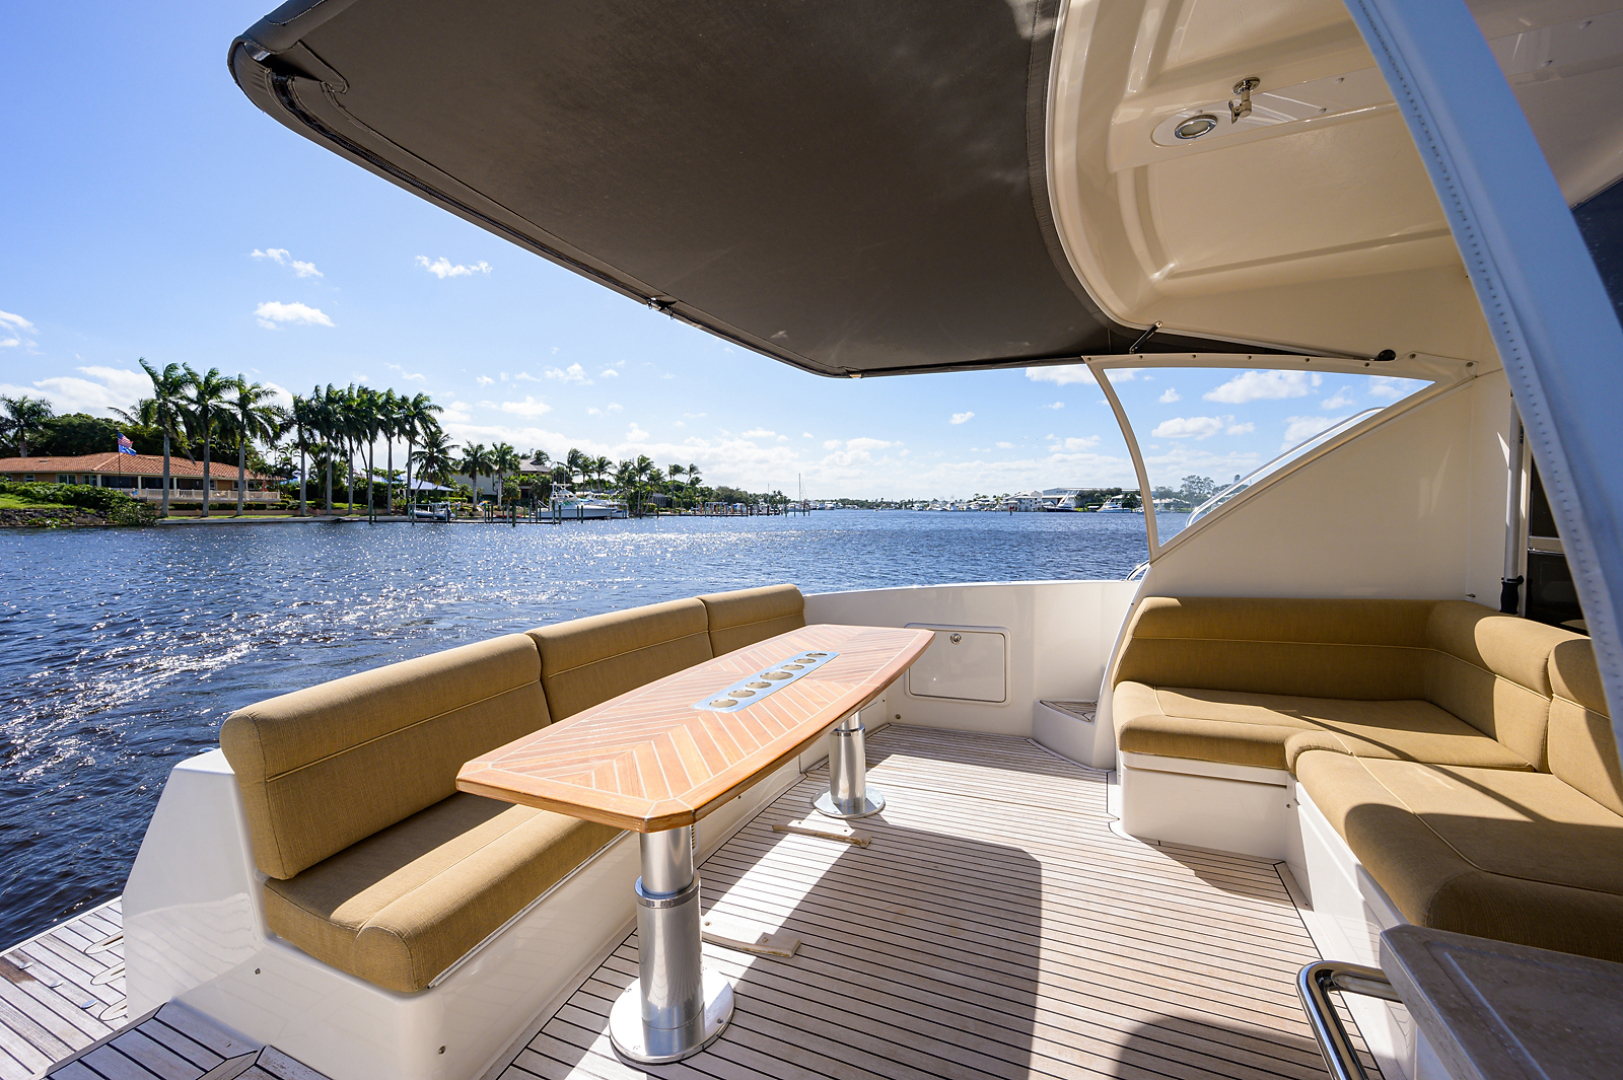 Riviera-5000 Sport Yacht 2012-Lady J Palm Beach-Florida-United States-1553508 | Thumbnail